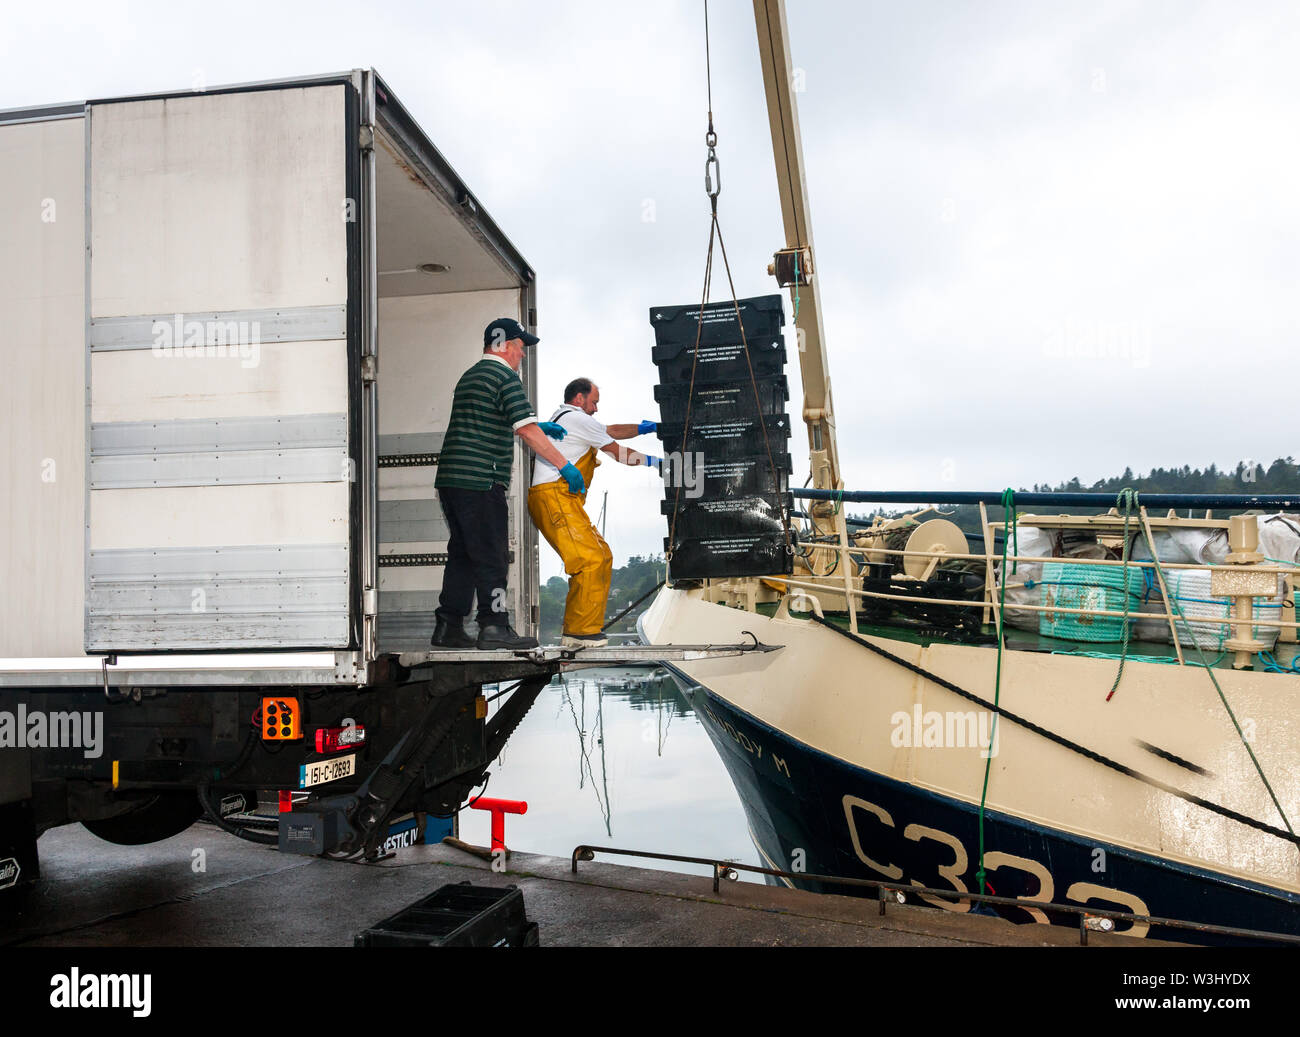 Crosshaven, Cork, Ireland. 16th July, 2019. Lorry driver, Gerry McGrath and trawler Buddy M crew member Roger Murphy begin to unload her catch of Haddock and Whiting on the quayside in Crosshaven, Co. Cork, Ireland. Credit: David Creedon/Alamy Live News - Stock Image